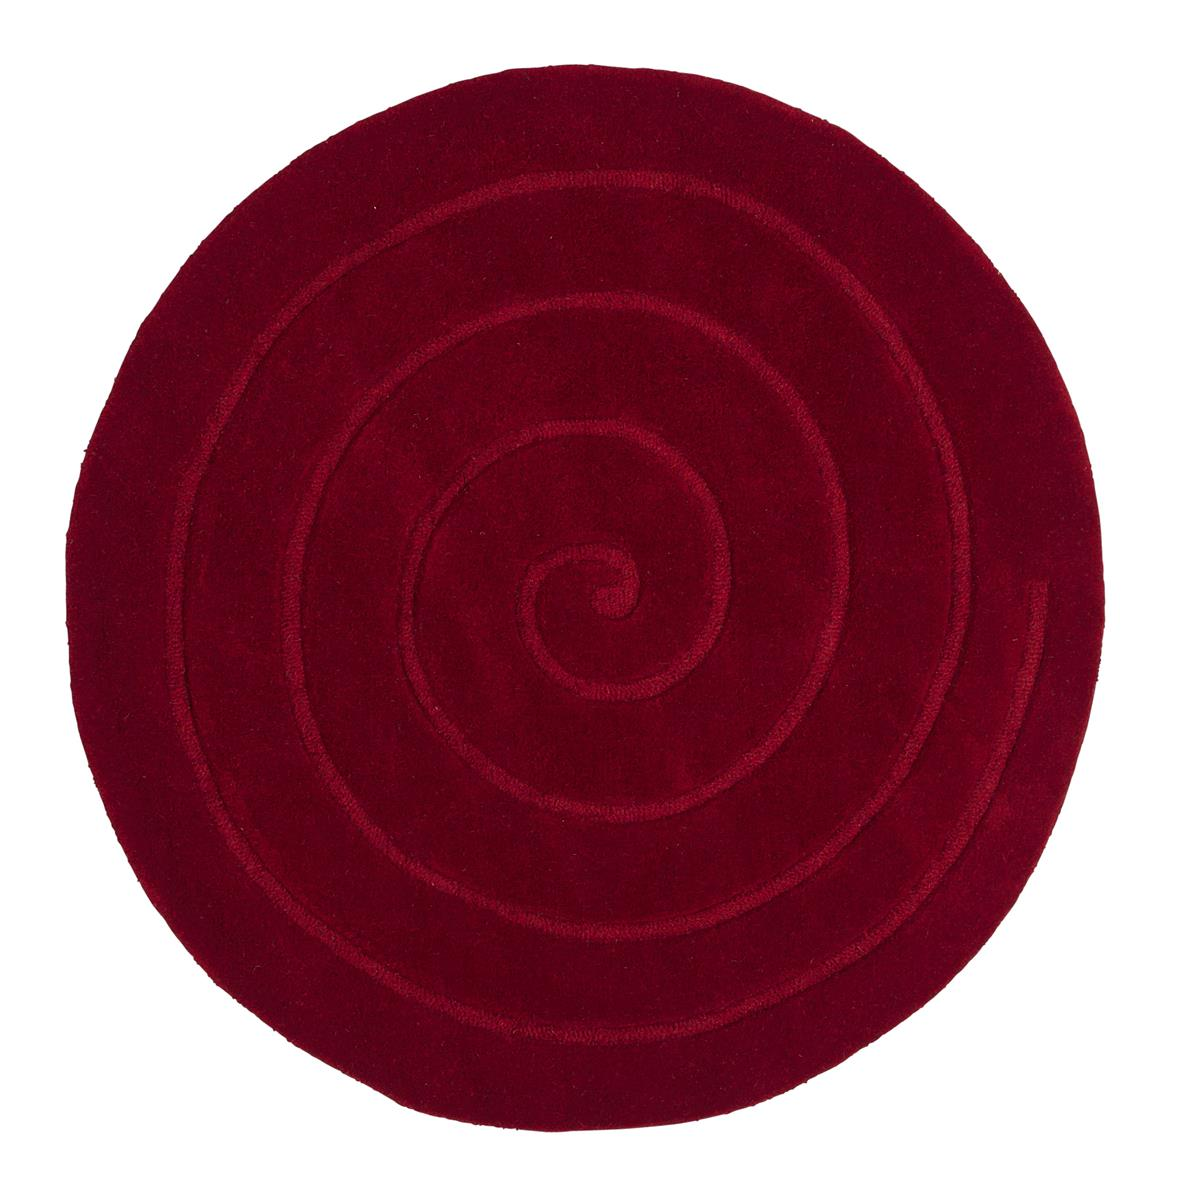 Spiral Red Circle Rug   Contemporary Luxury Wool Circular Rugs